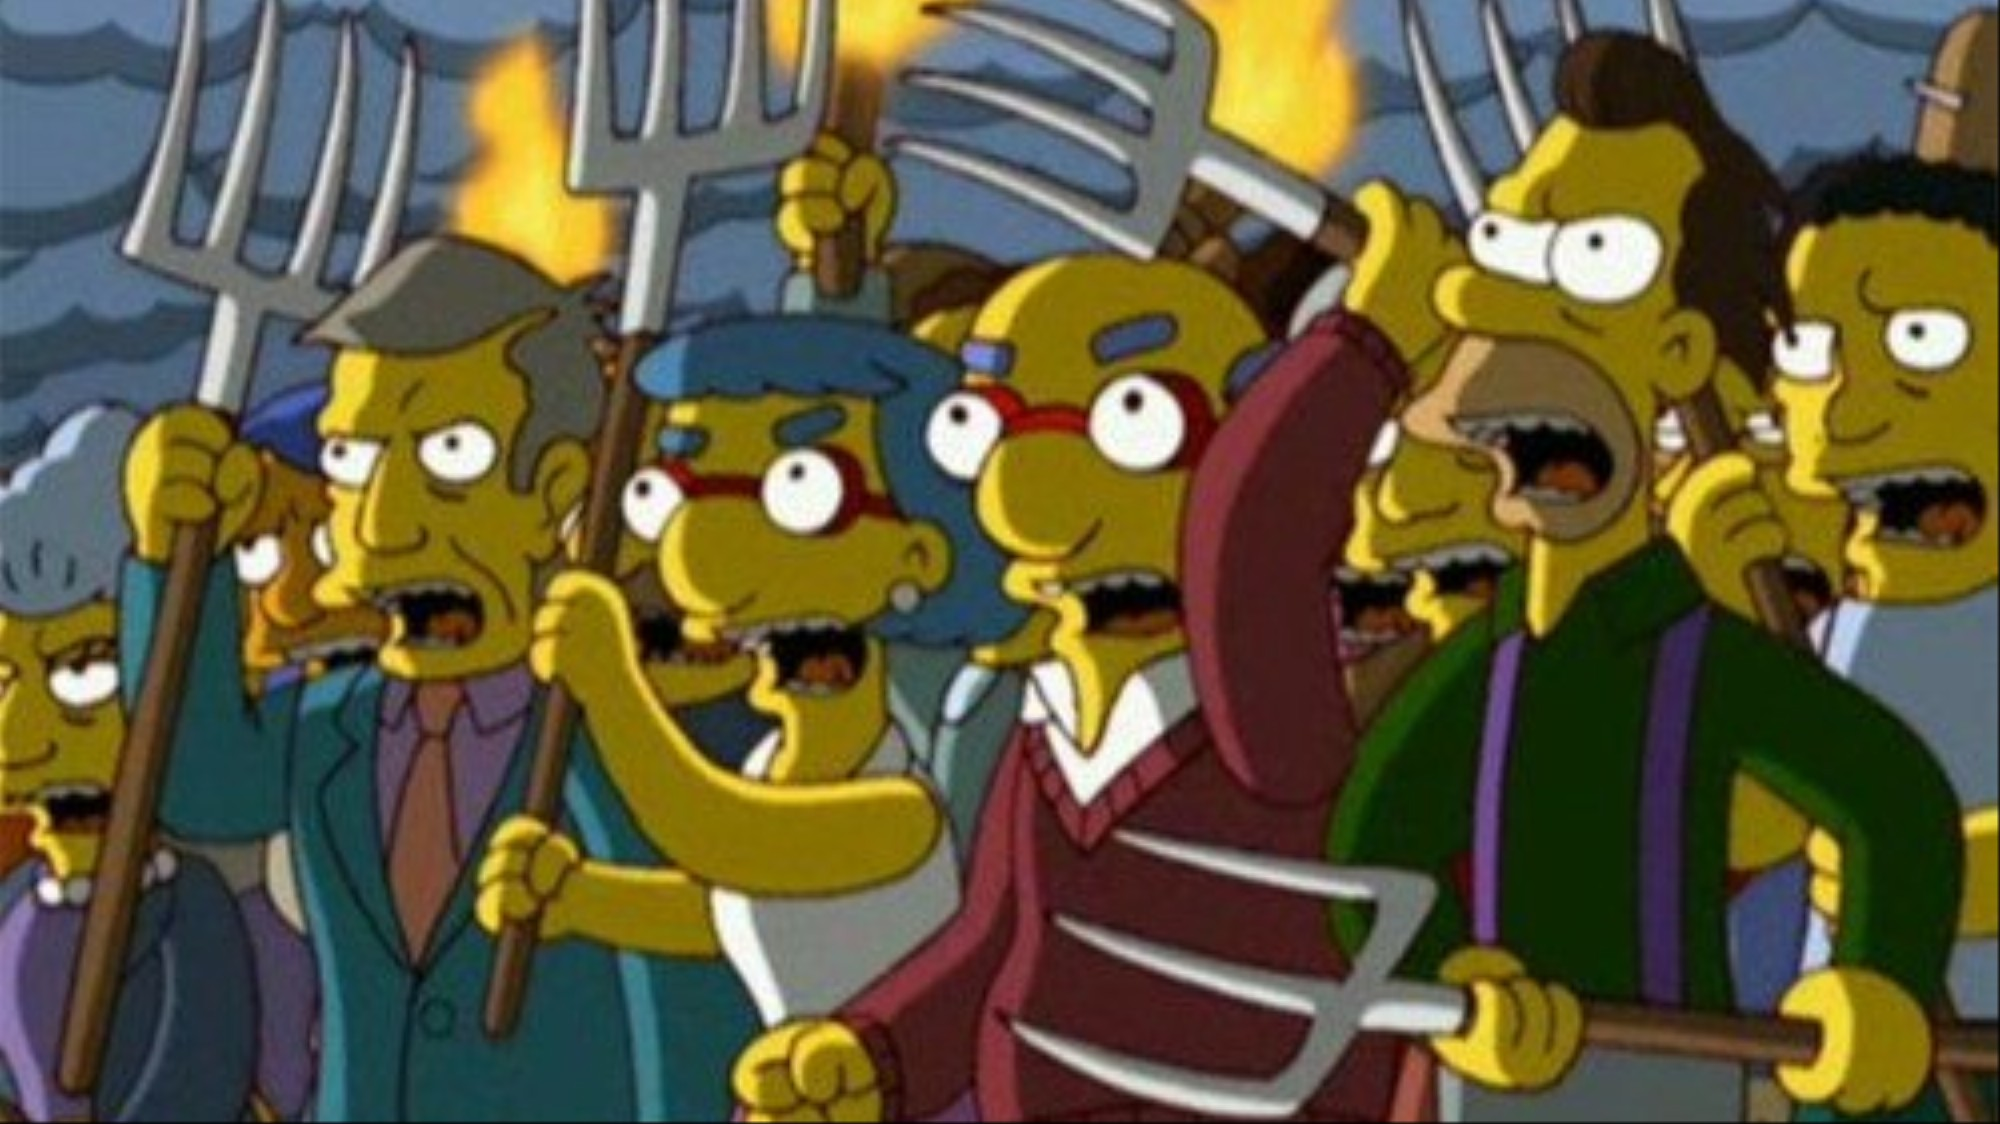 I Watched 'The Simpsons' for the First Time Ever and I